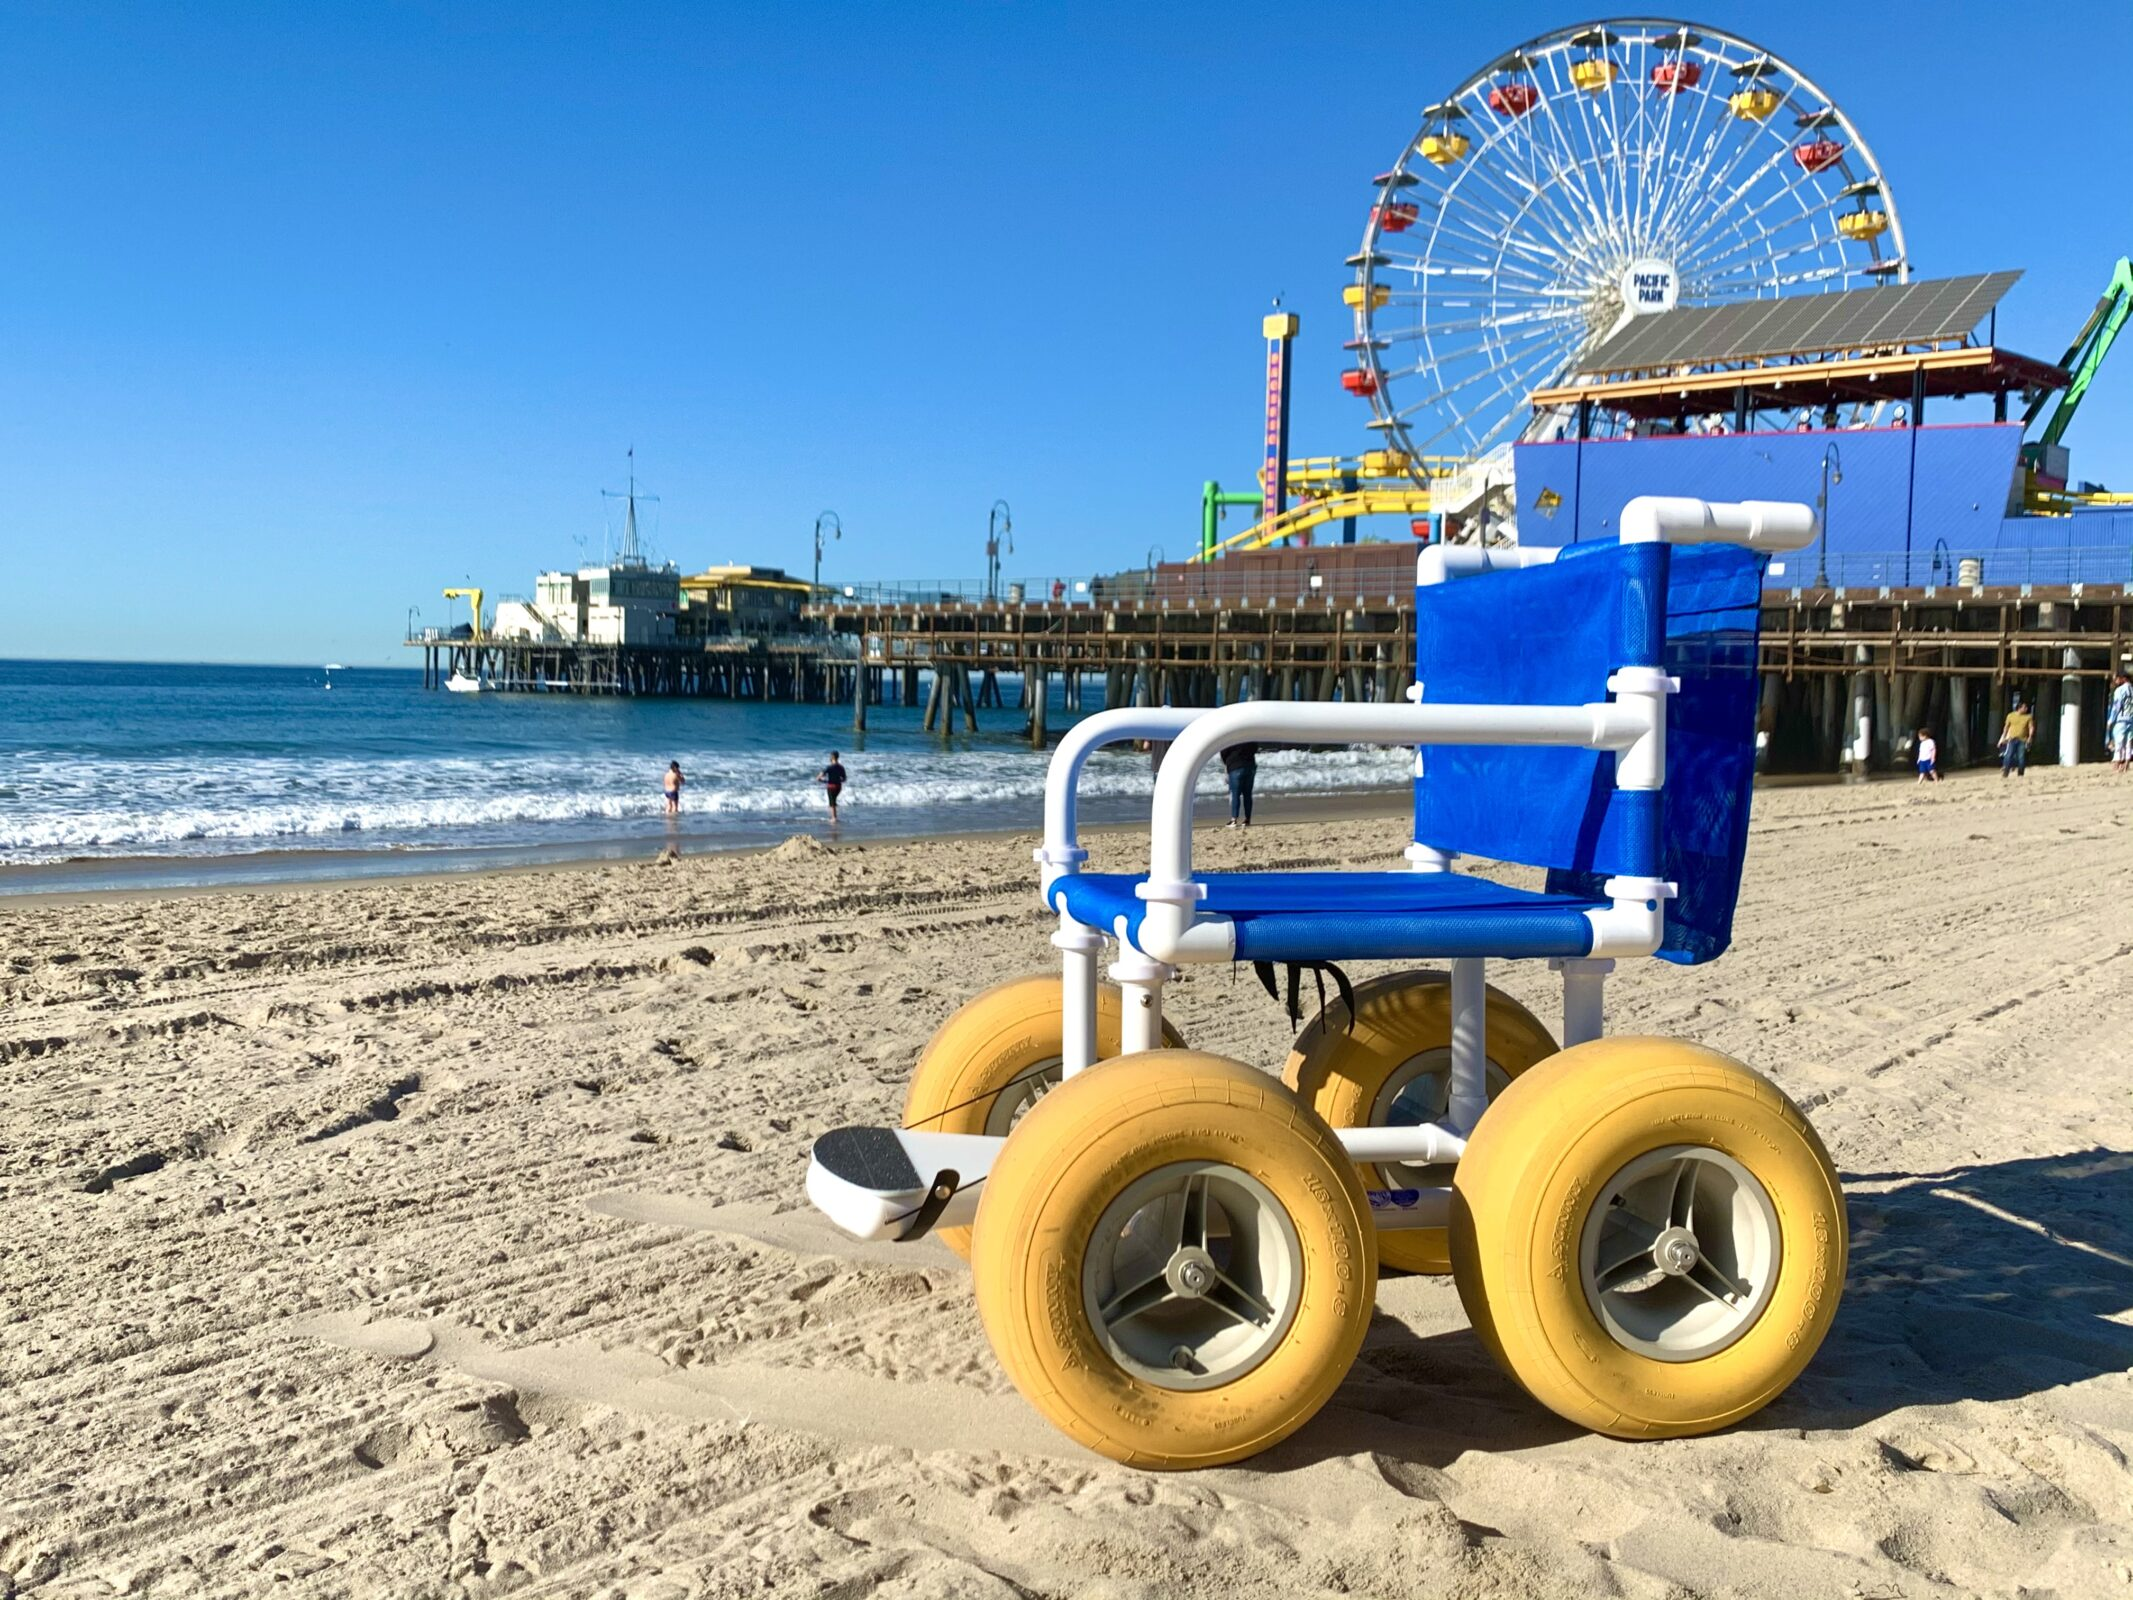 Beach Wheelchair at Santa Monica Pier